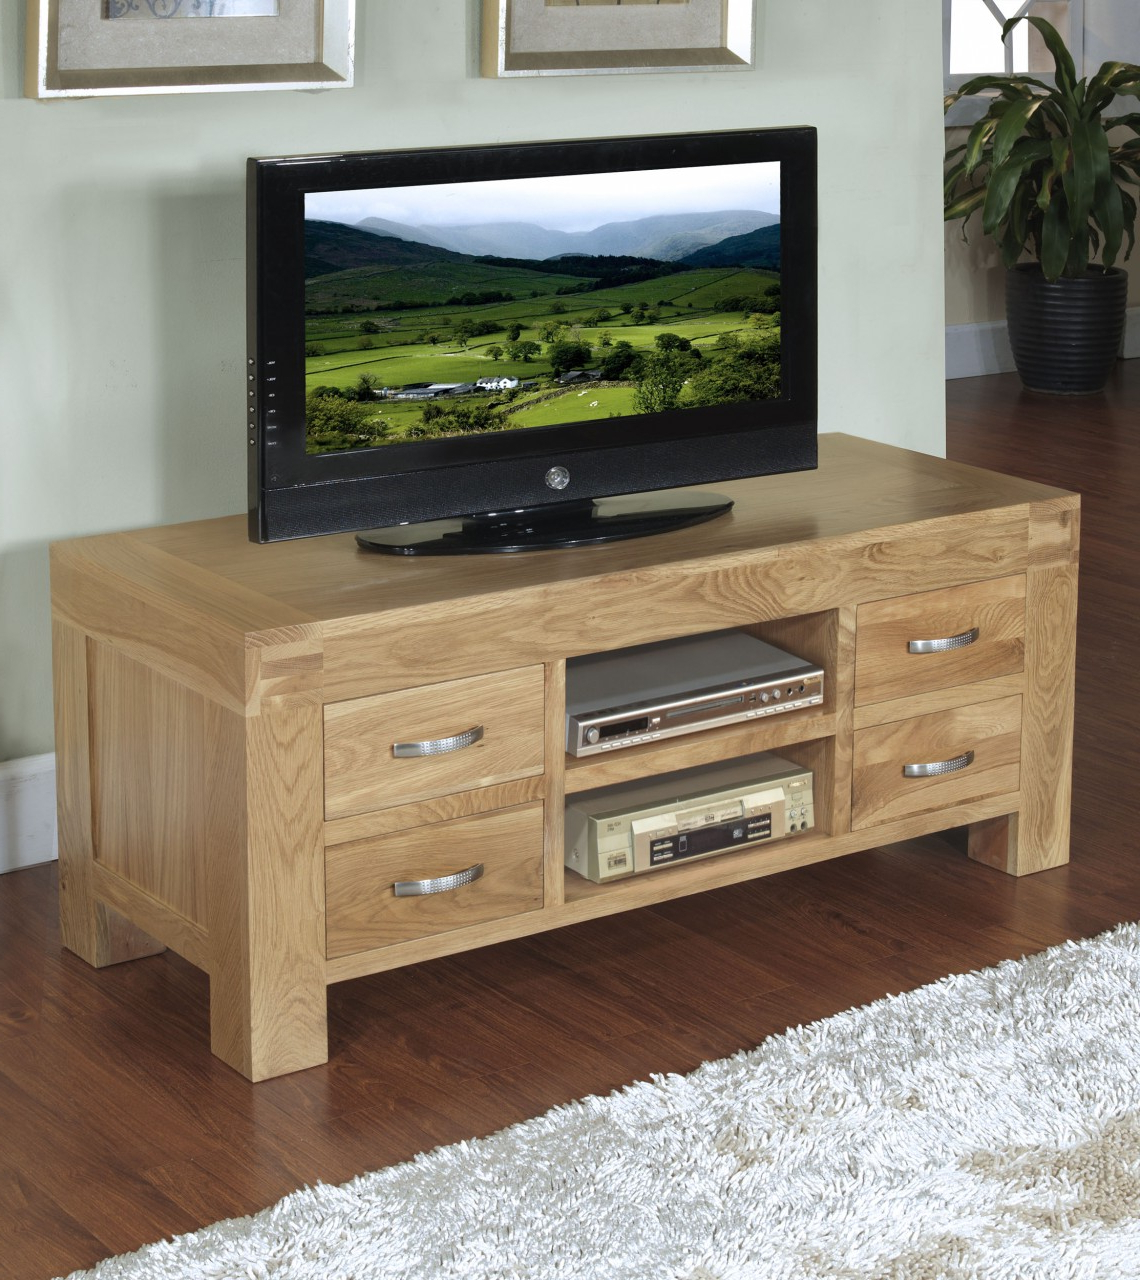 Reclaimed Wood Tv Stands Natural Oak Stand Consoles For Flat Screens Intended For Best And Newest Rustic Wood Tv Cabinets (Gallery 18 of 20)